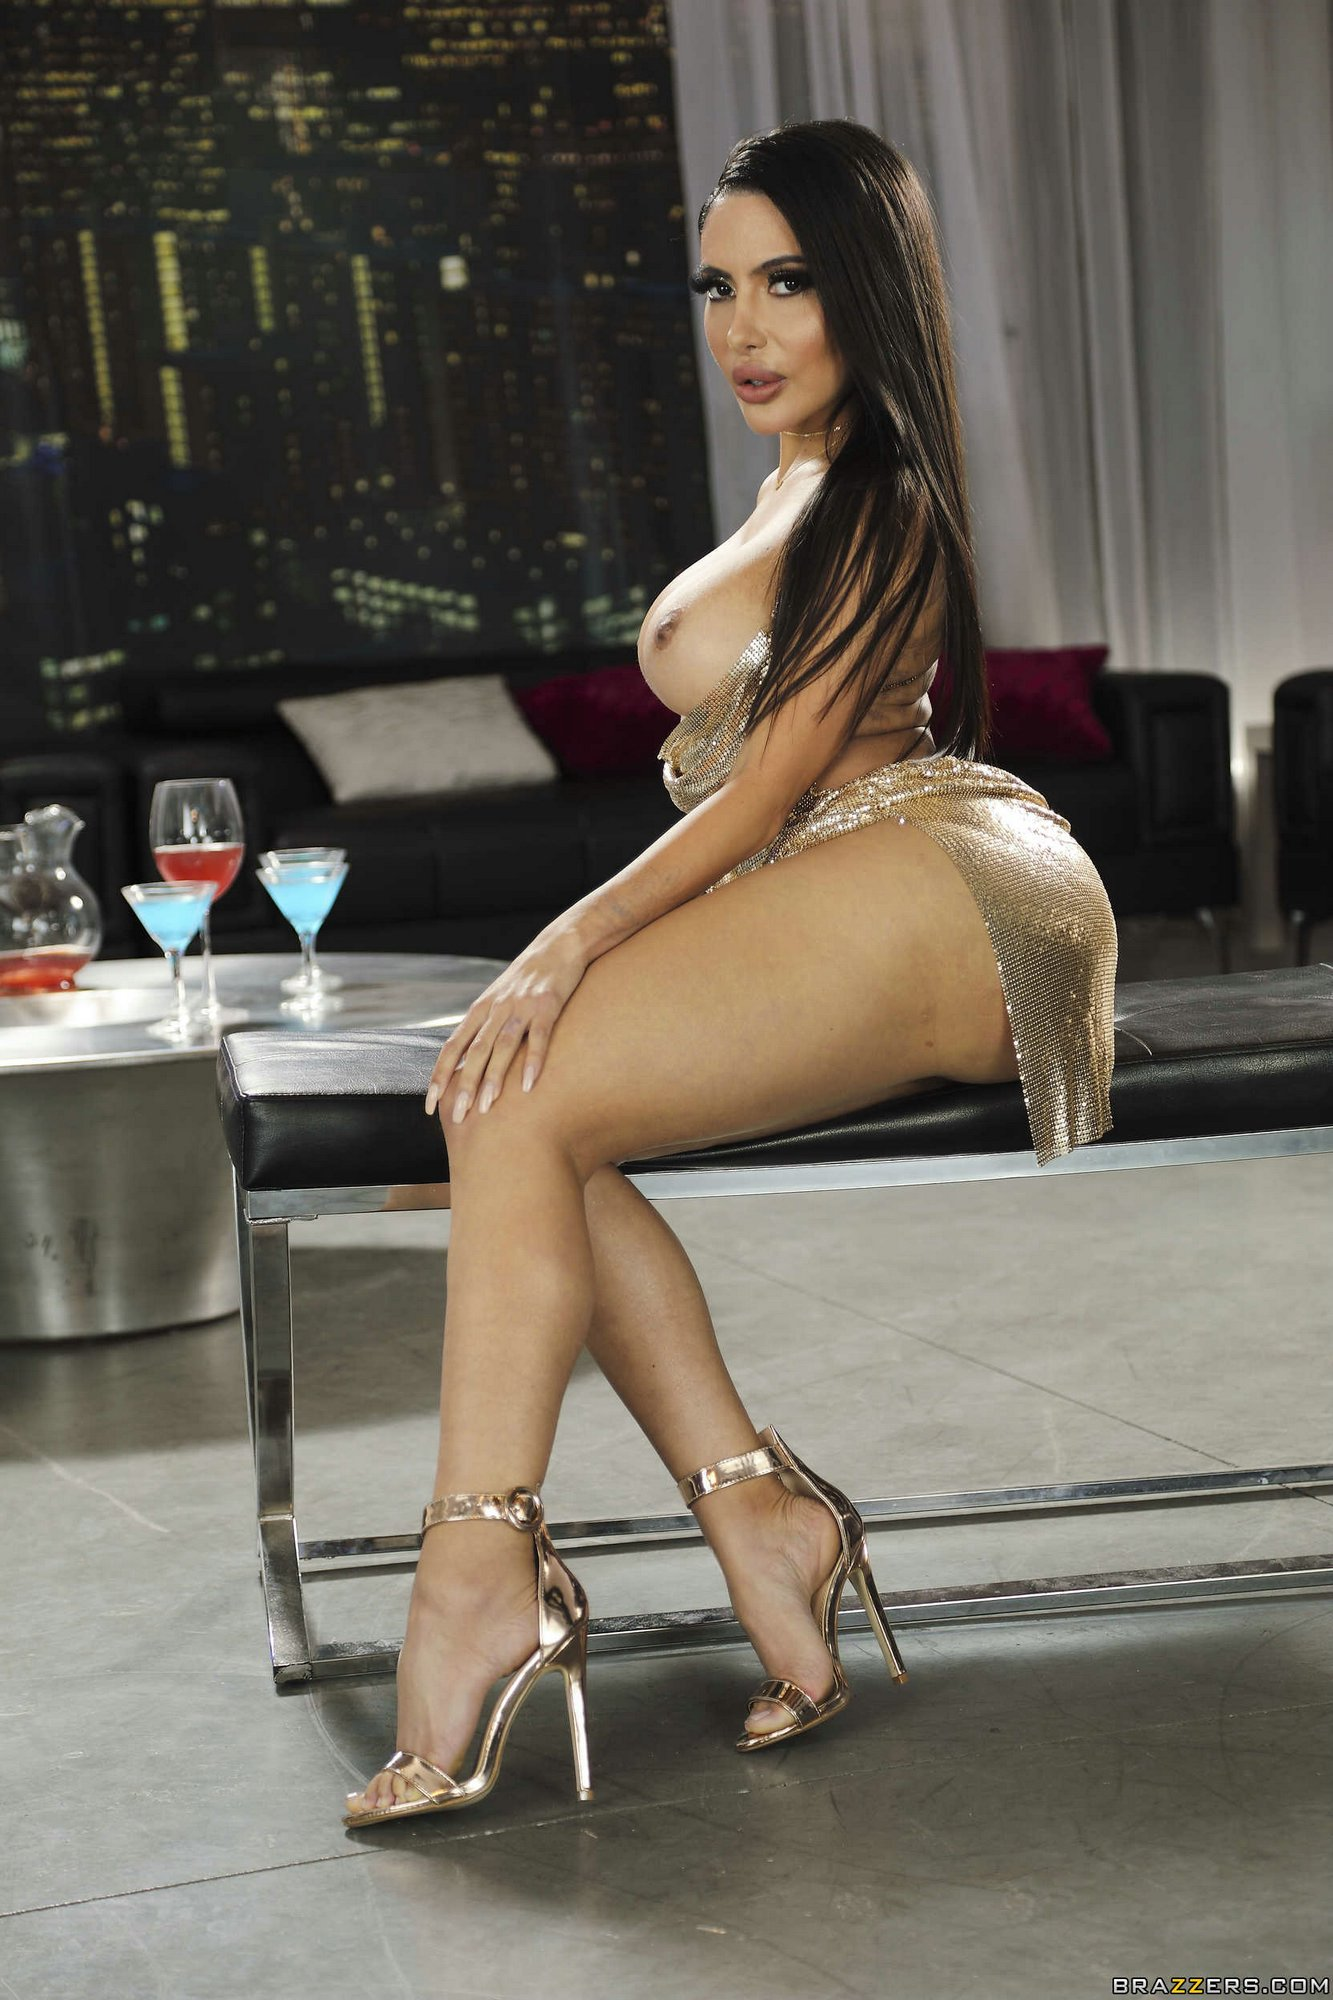 Lela Star In Sexy Dress And Shoes Likes Teasing - My -6168